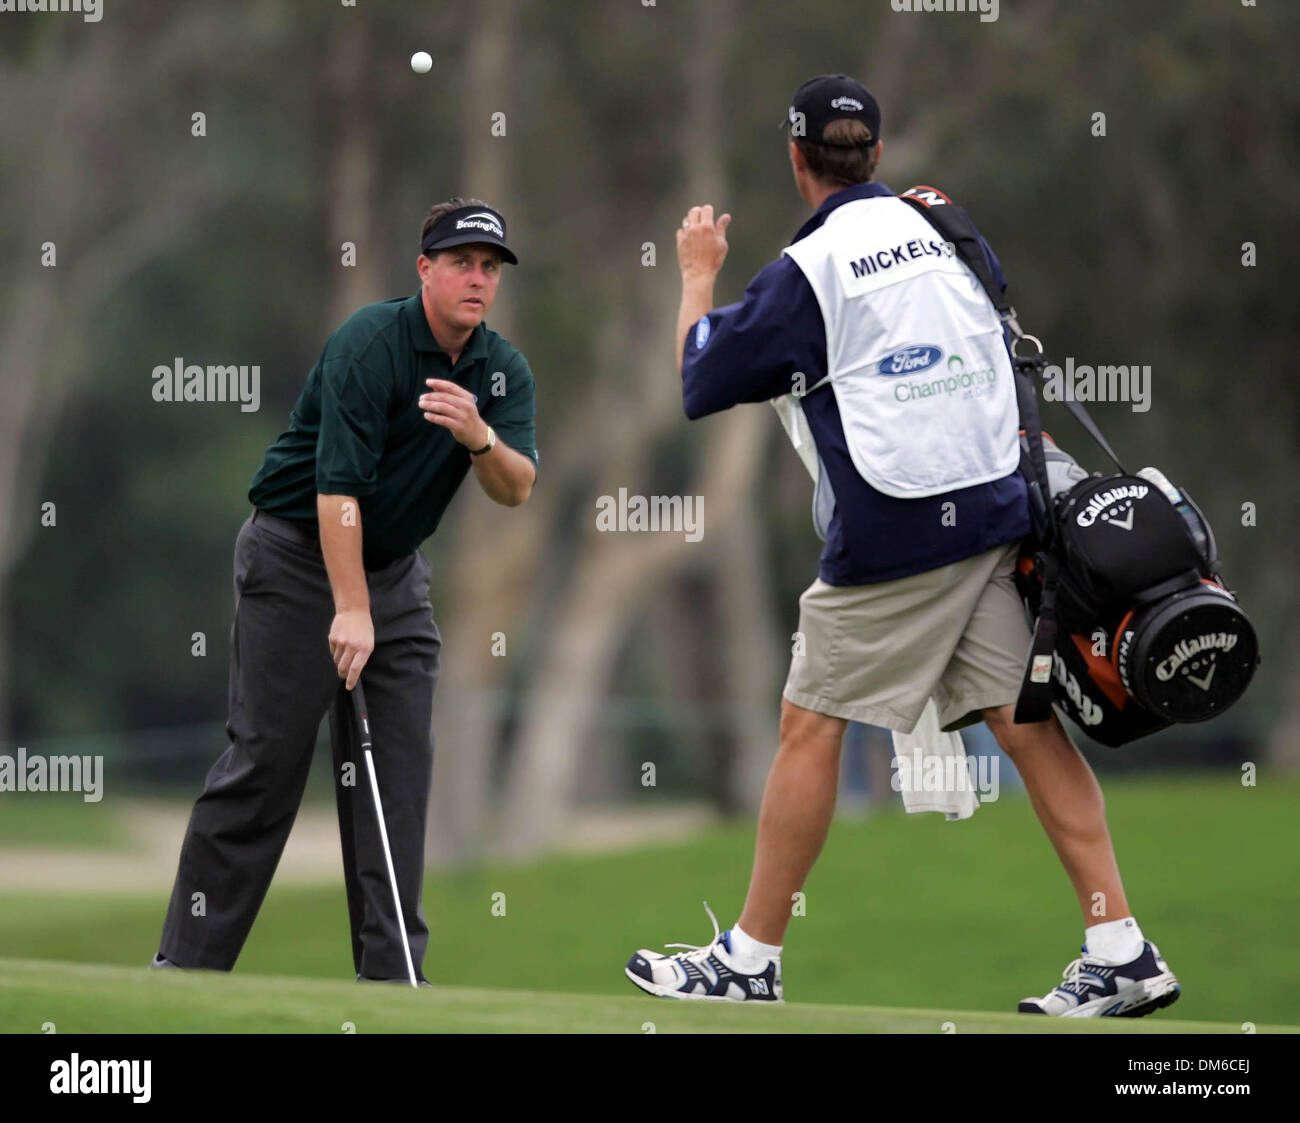 Mar 03, 2005; Miami, FL, USA; PHIL MICKELSON tosses his ball to his caddie after making a bogey on the 10th hole. Stock Photo